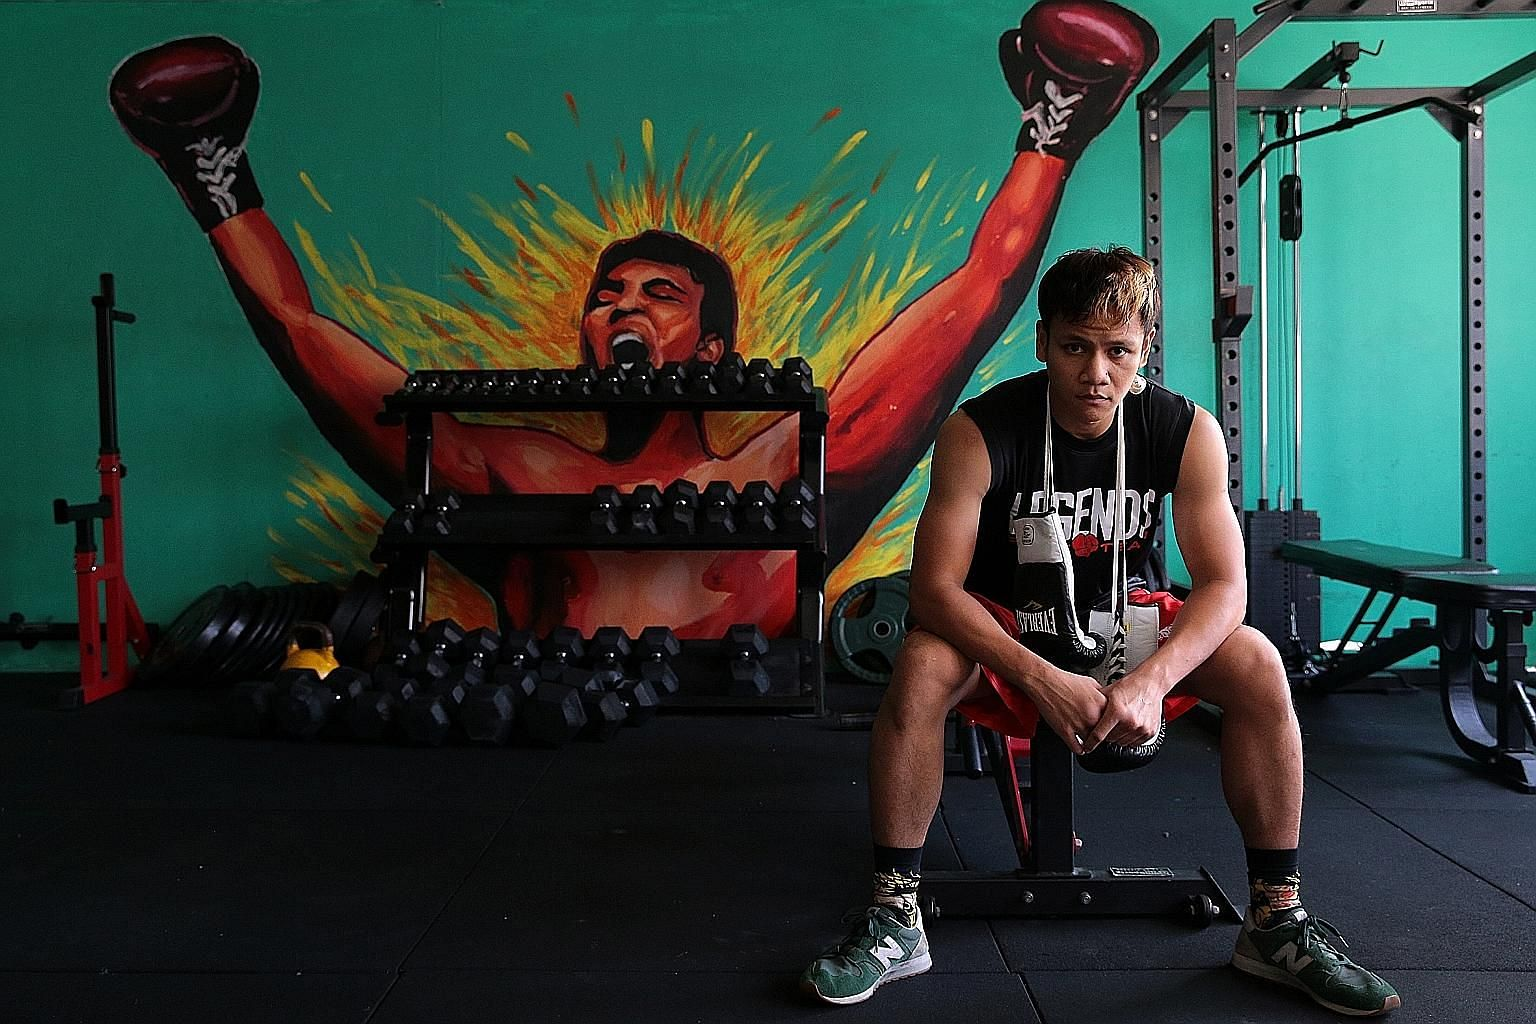 Singapore pro boxer Muhamad Ridhwan's career has been left in limbo after Scott O'Farrell, CEO and face of his management company, Ringstar Asia, resigned in April. Muhamad Ridhwan on the ropes against Namibia's Paulus Ambunda in their IBO super bant